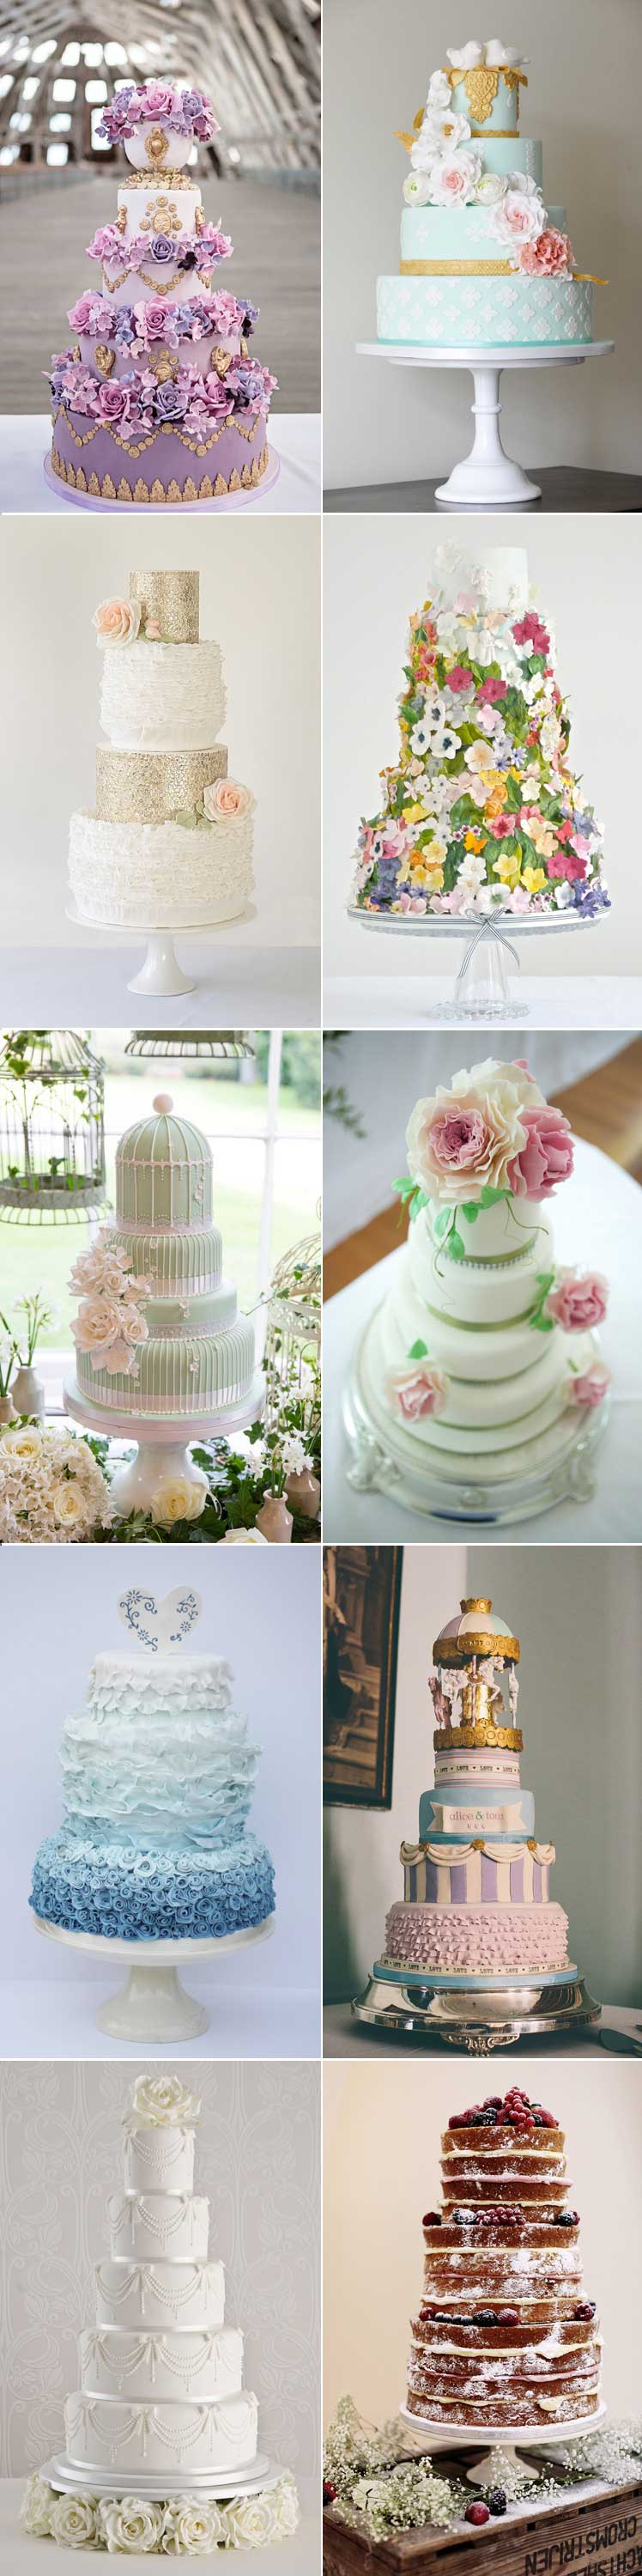 10 amazing wedding cakes